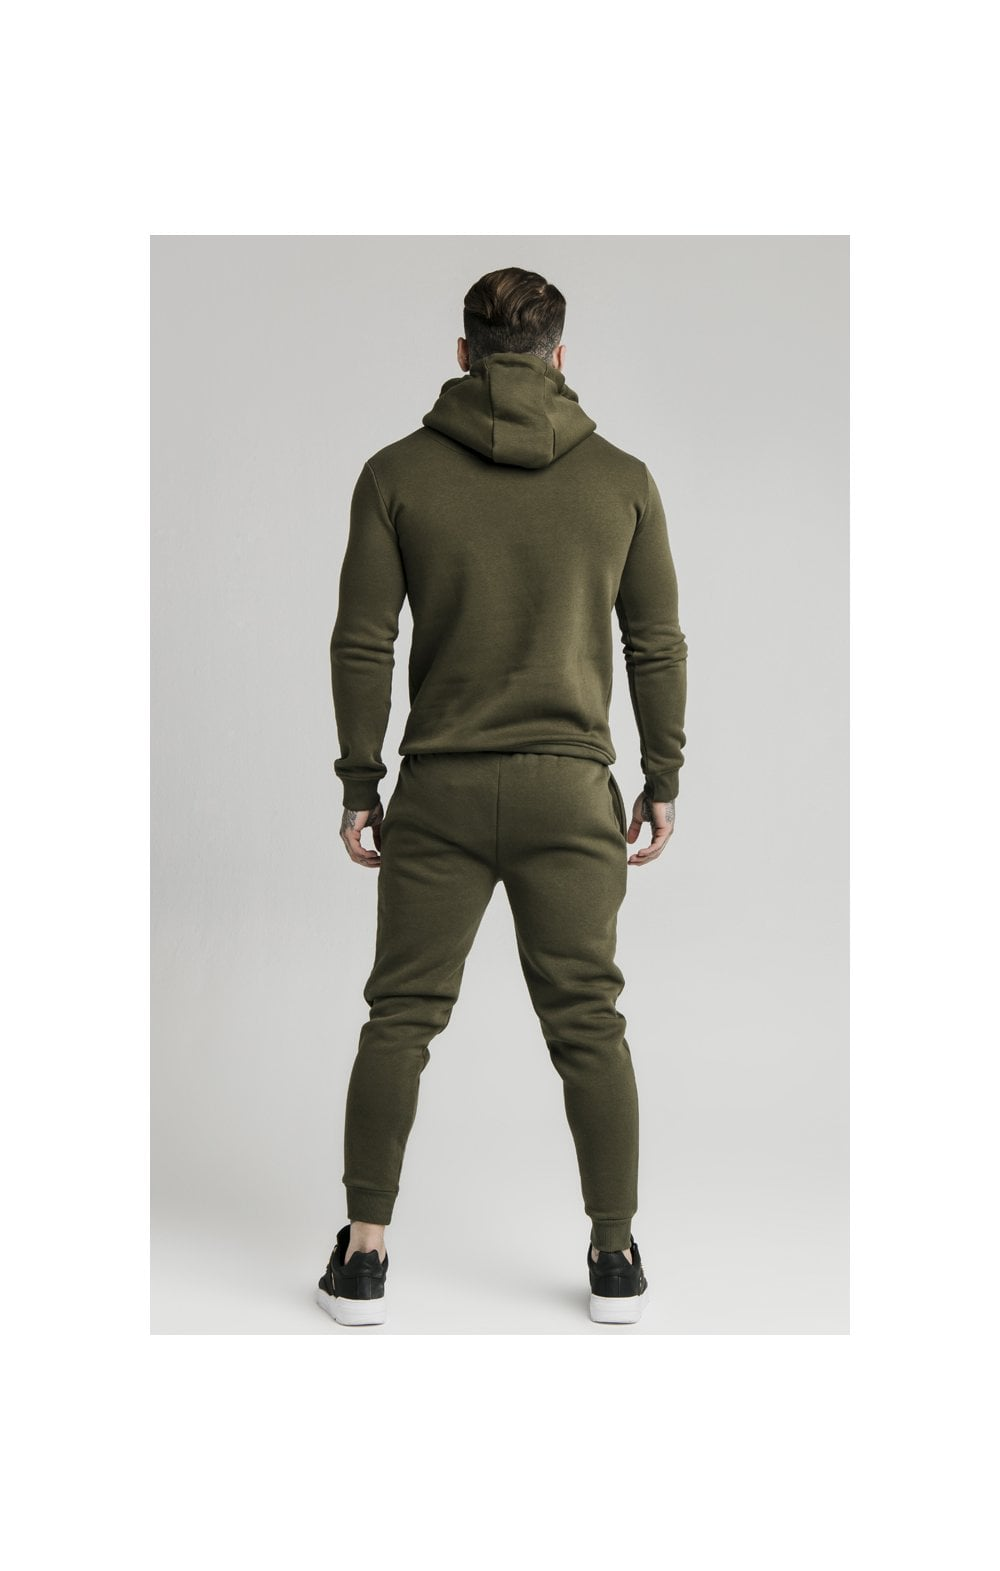 Load image into Gallery viewer, SikSilk Muscle Fit Overhead Hoodie - Khaki (5)